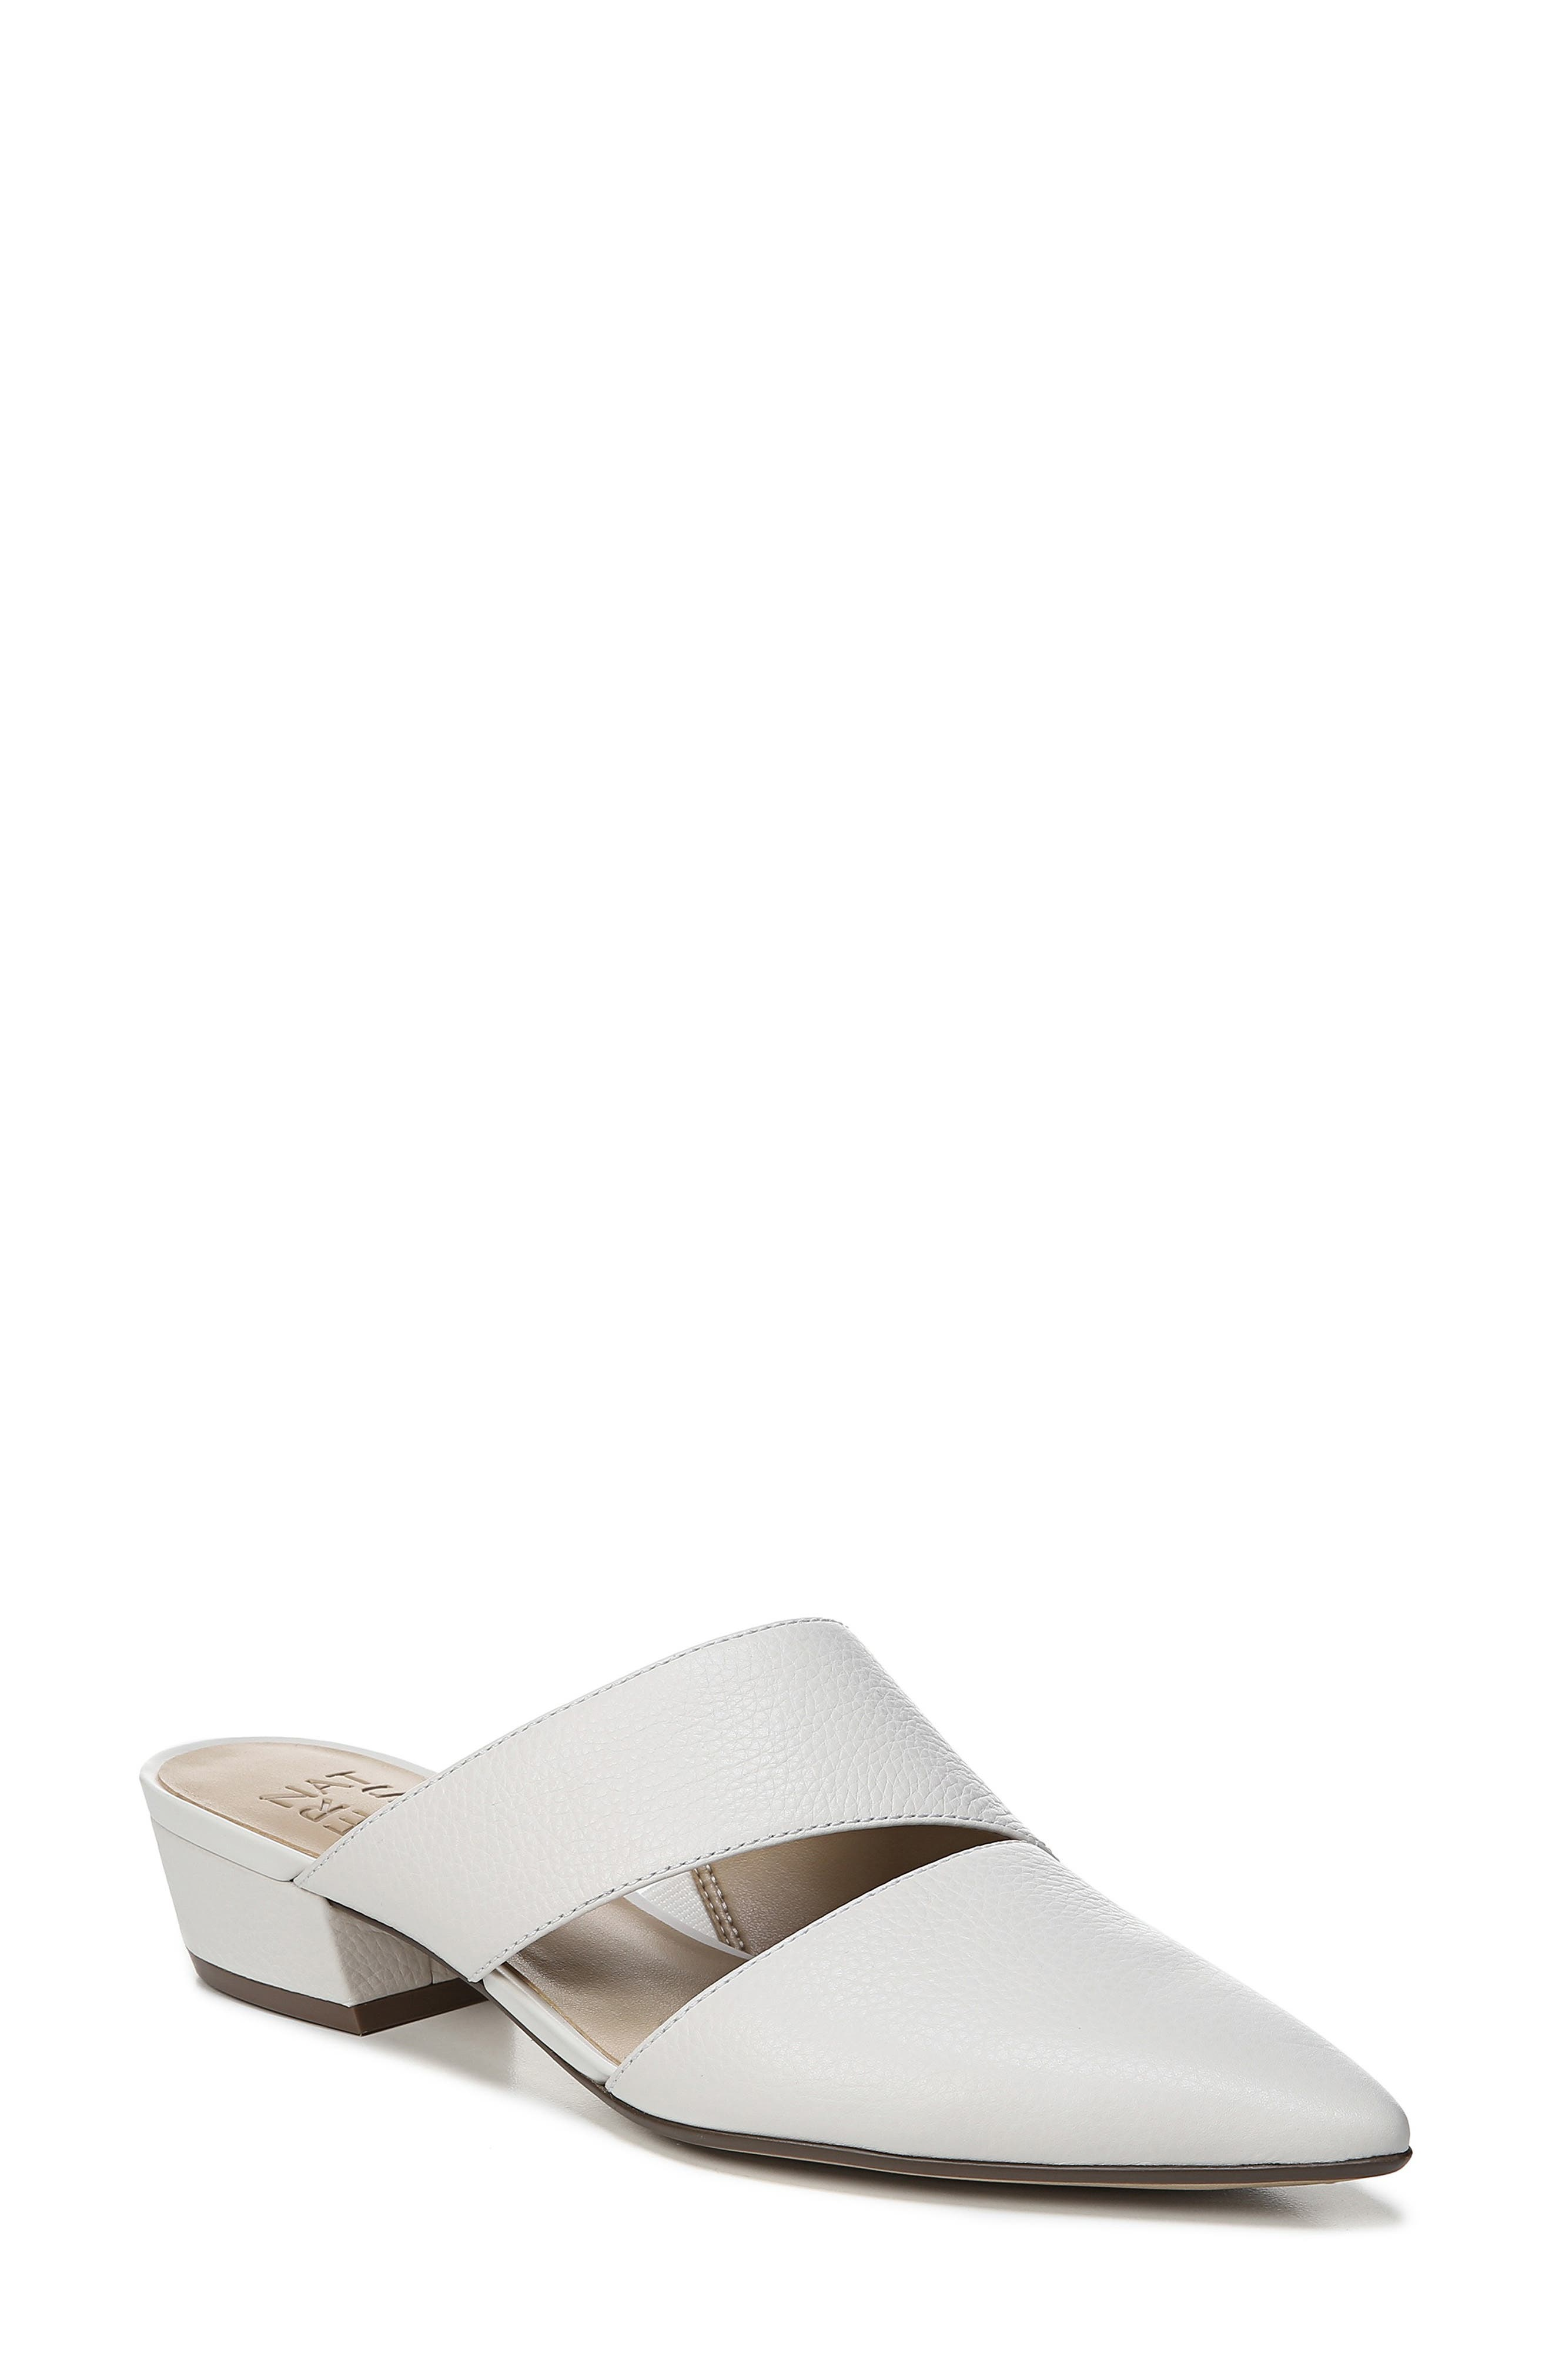 Naturalizer Bev Pointy Toe Mule, White